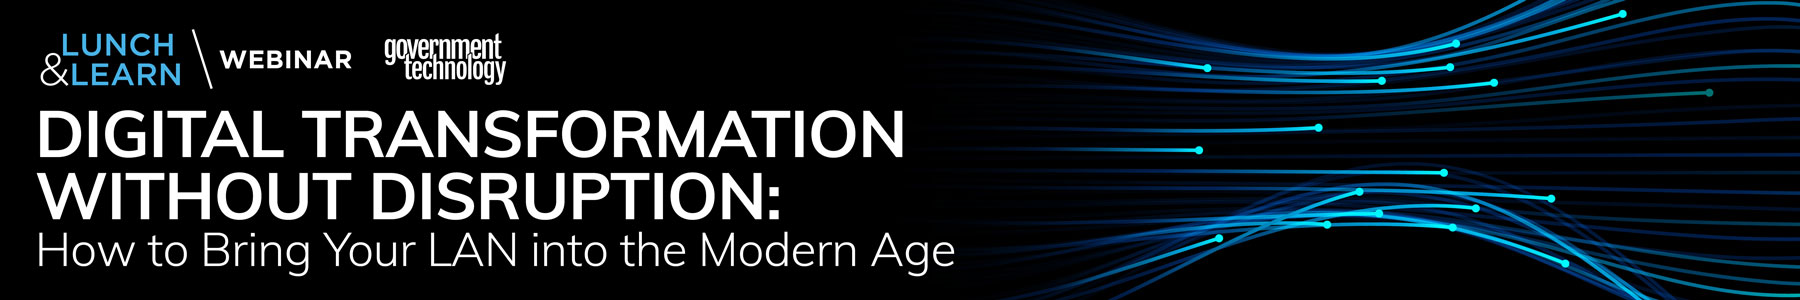 Digital Transformation Without Disruption: How to Bring Your LAN into the Modern Age